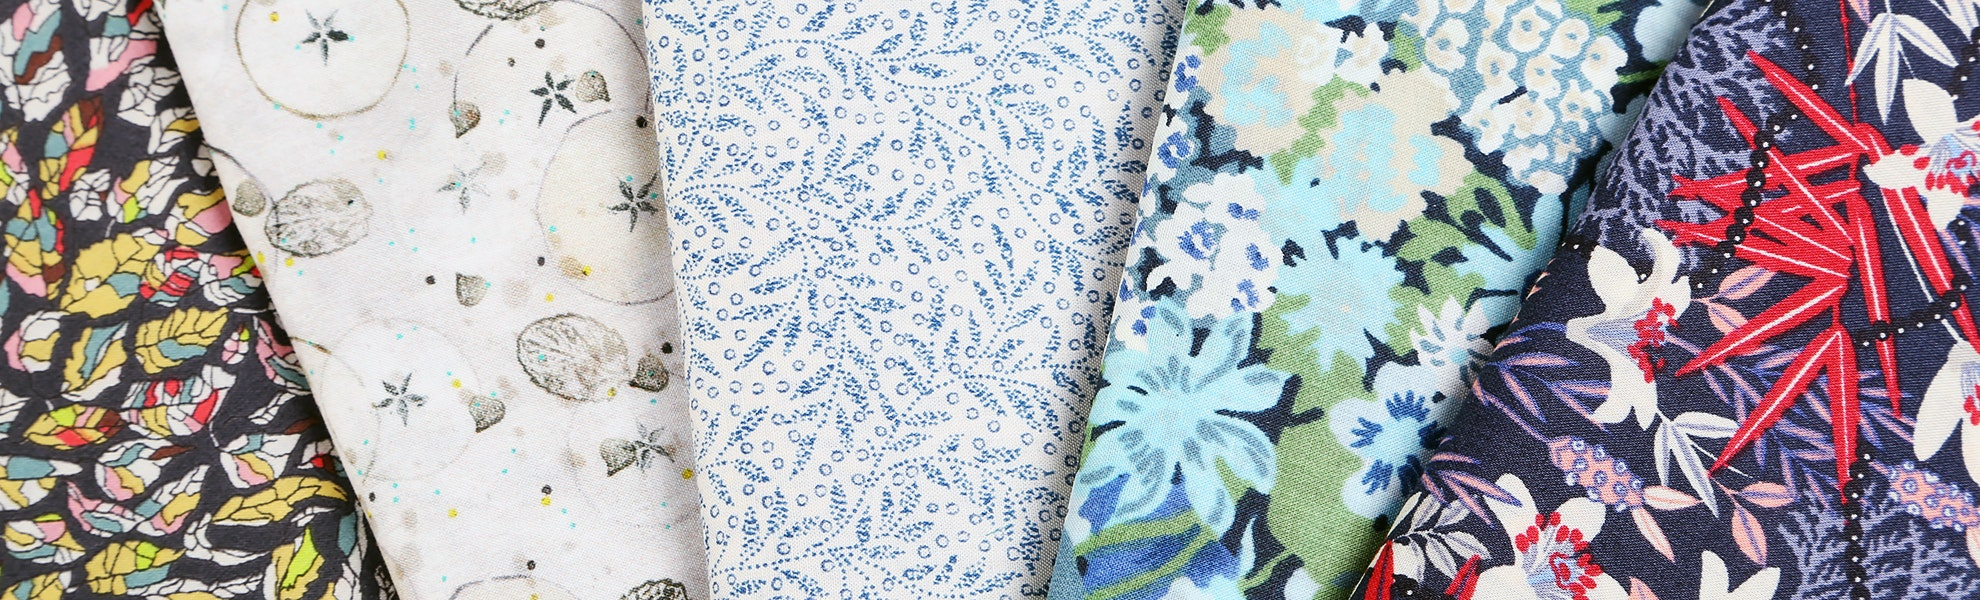 Liberty of London Yardage Bundle